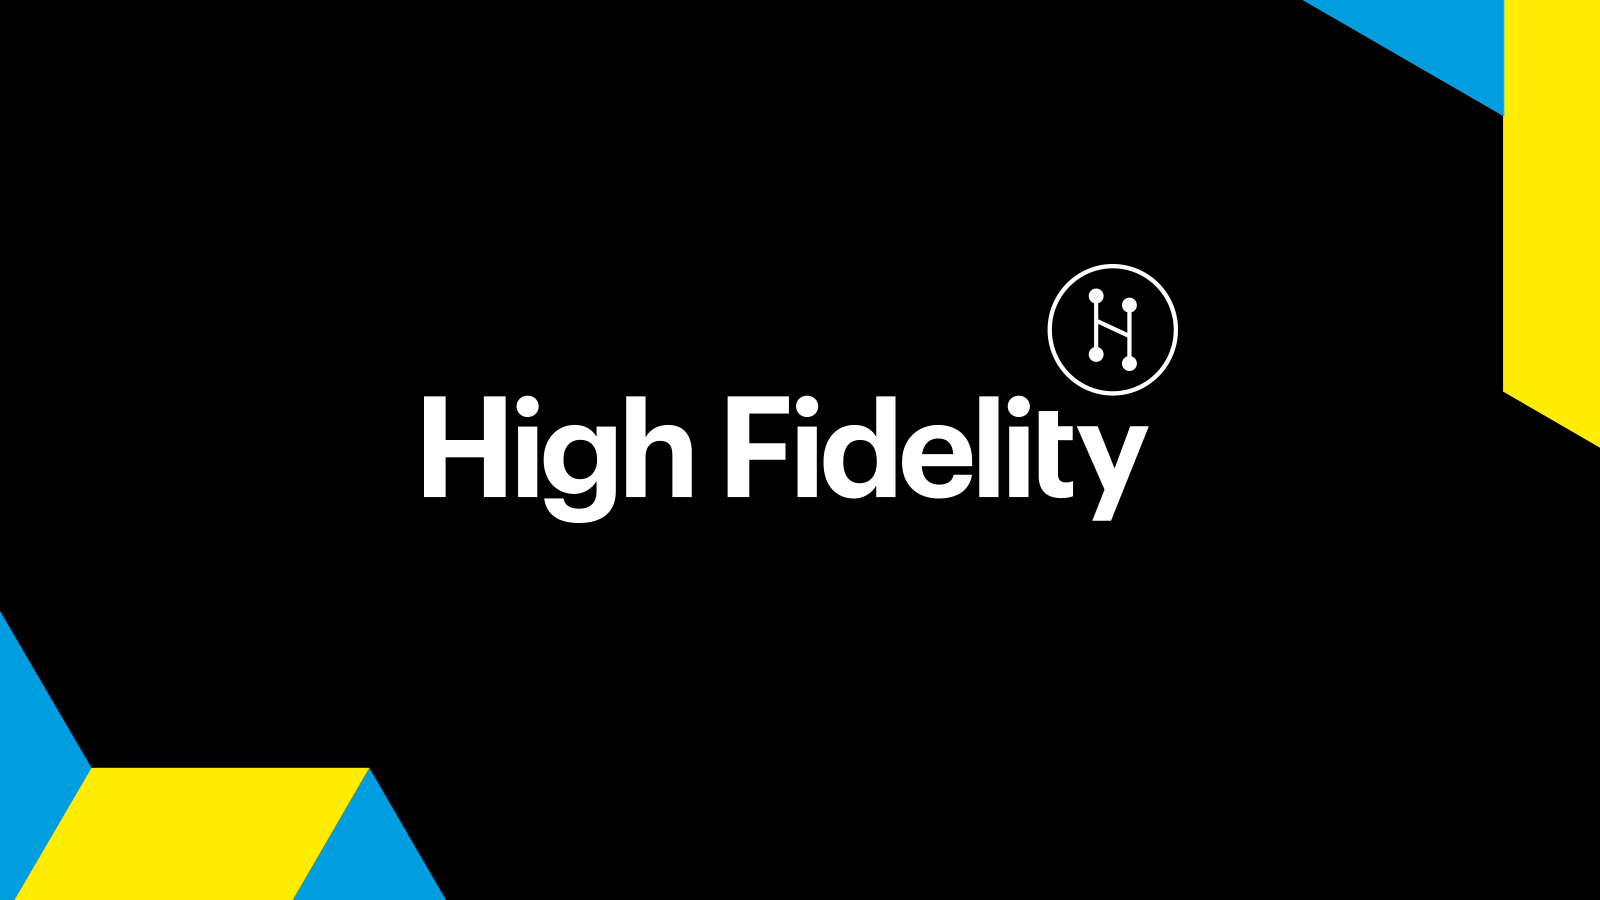 Announcing High Fidelity!